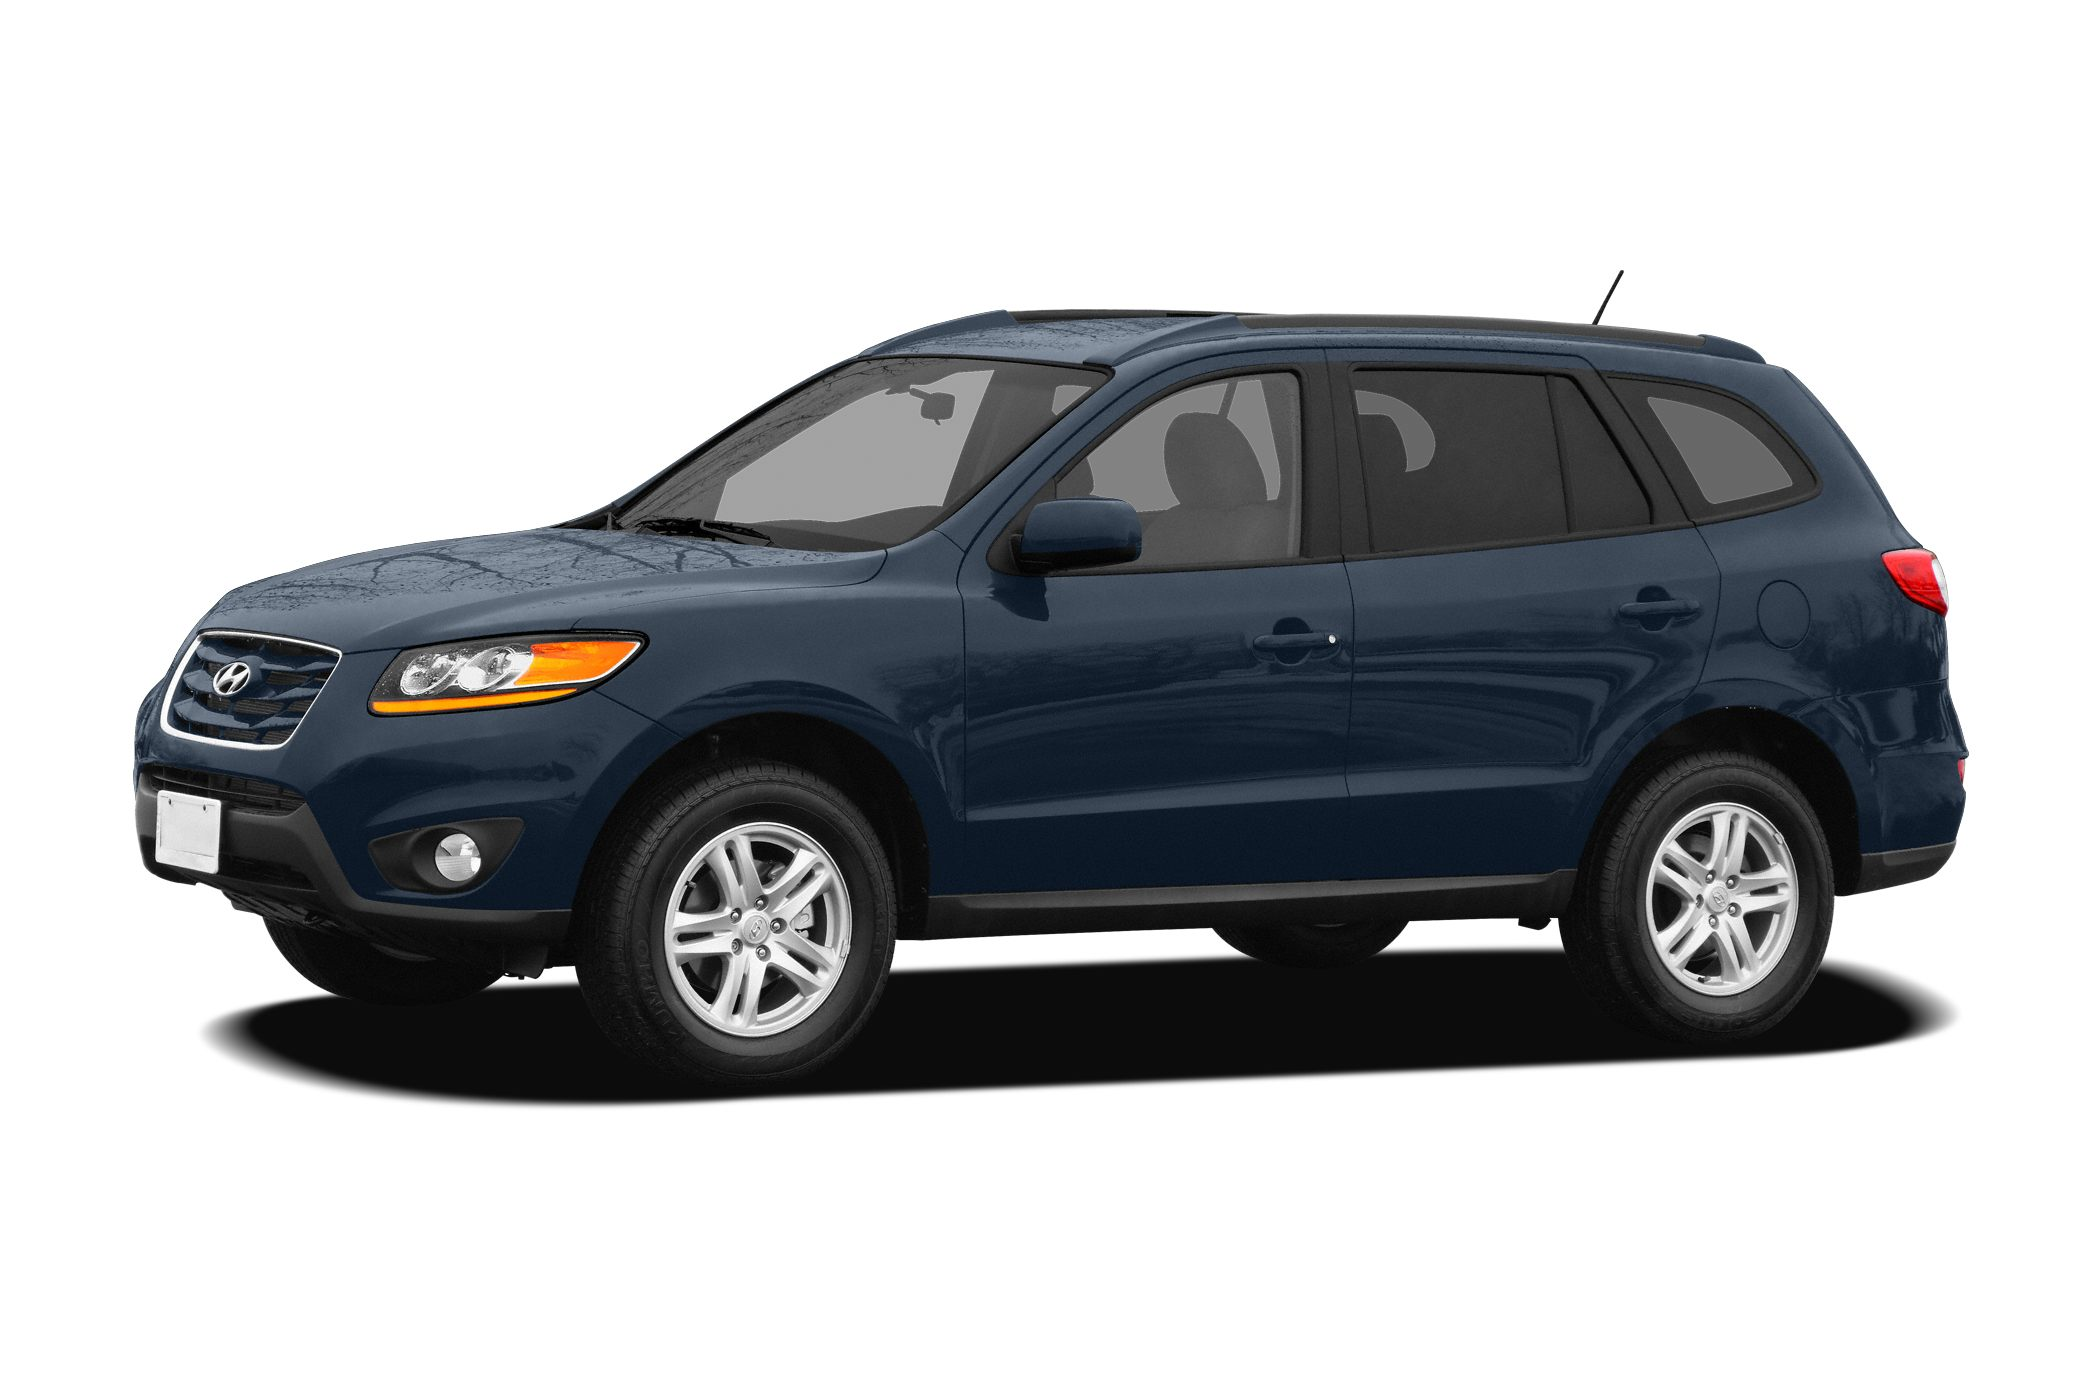 2010 Hyundai Santa Fe GLS SUV for sale in Johnstown for $11,990 with 84,619 miles